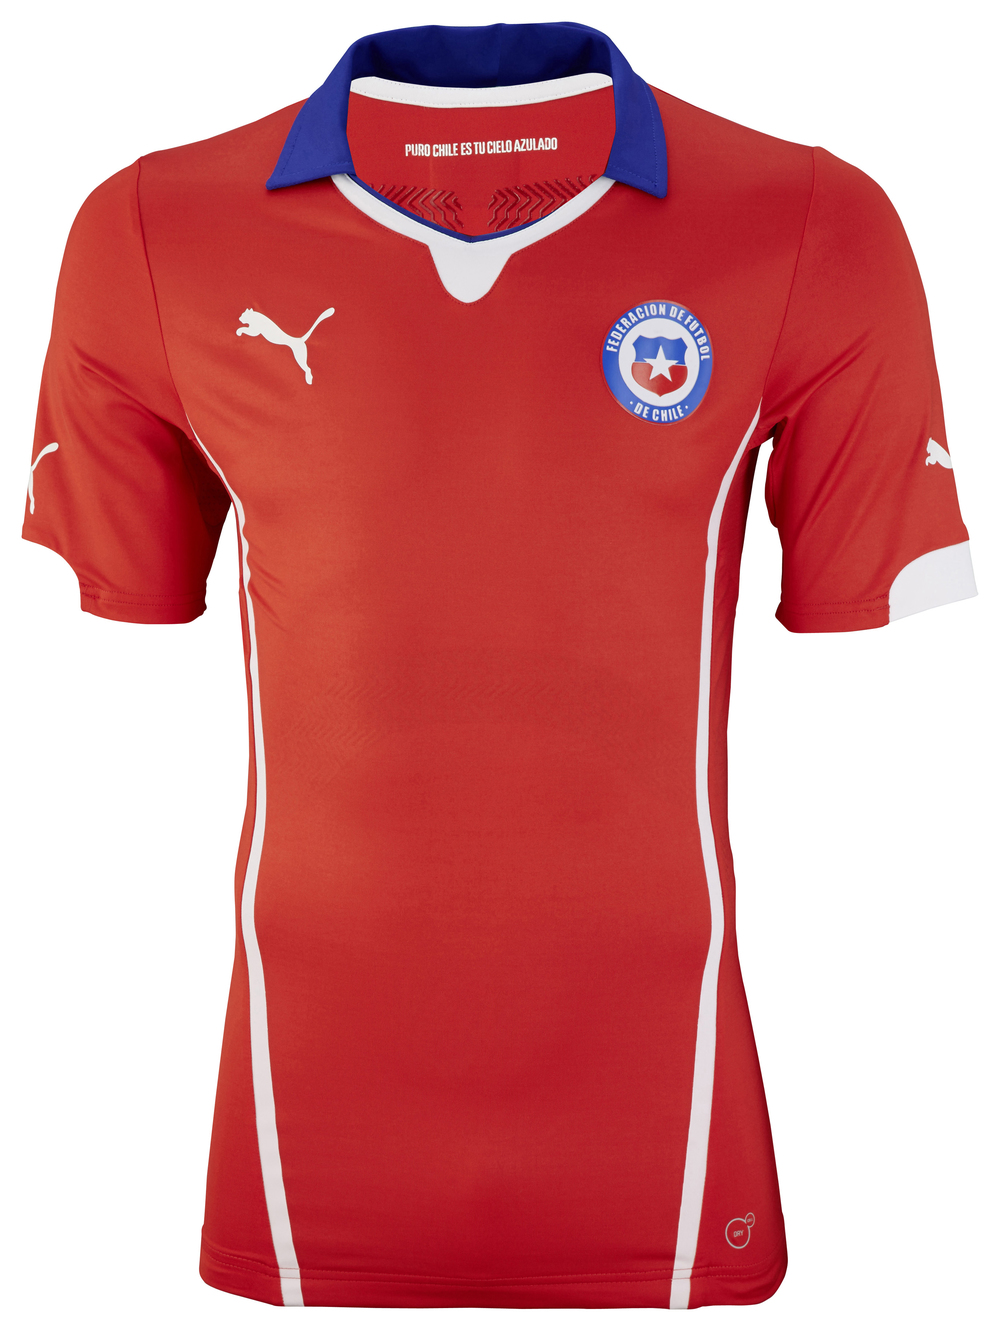 SS14 Chile Home Promo ACTV Shirt_744217_05.jpg